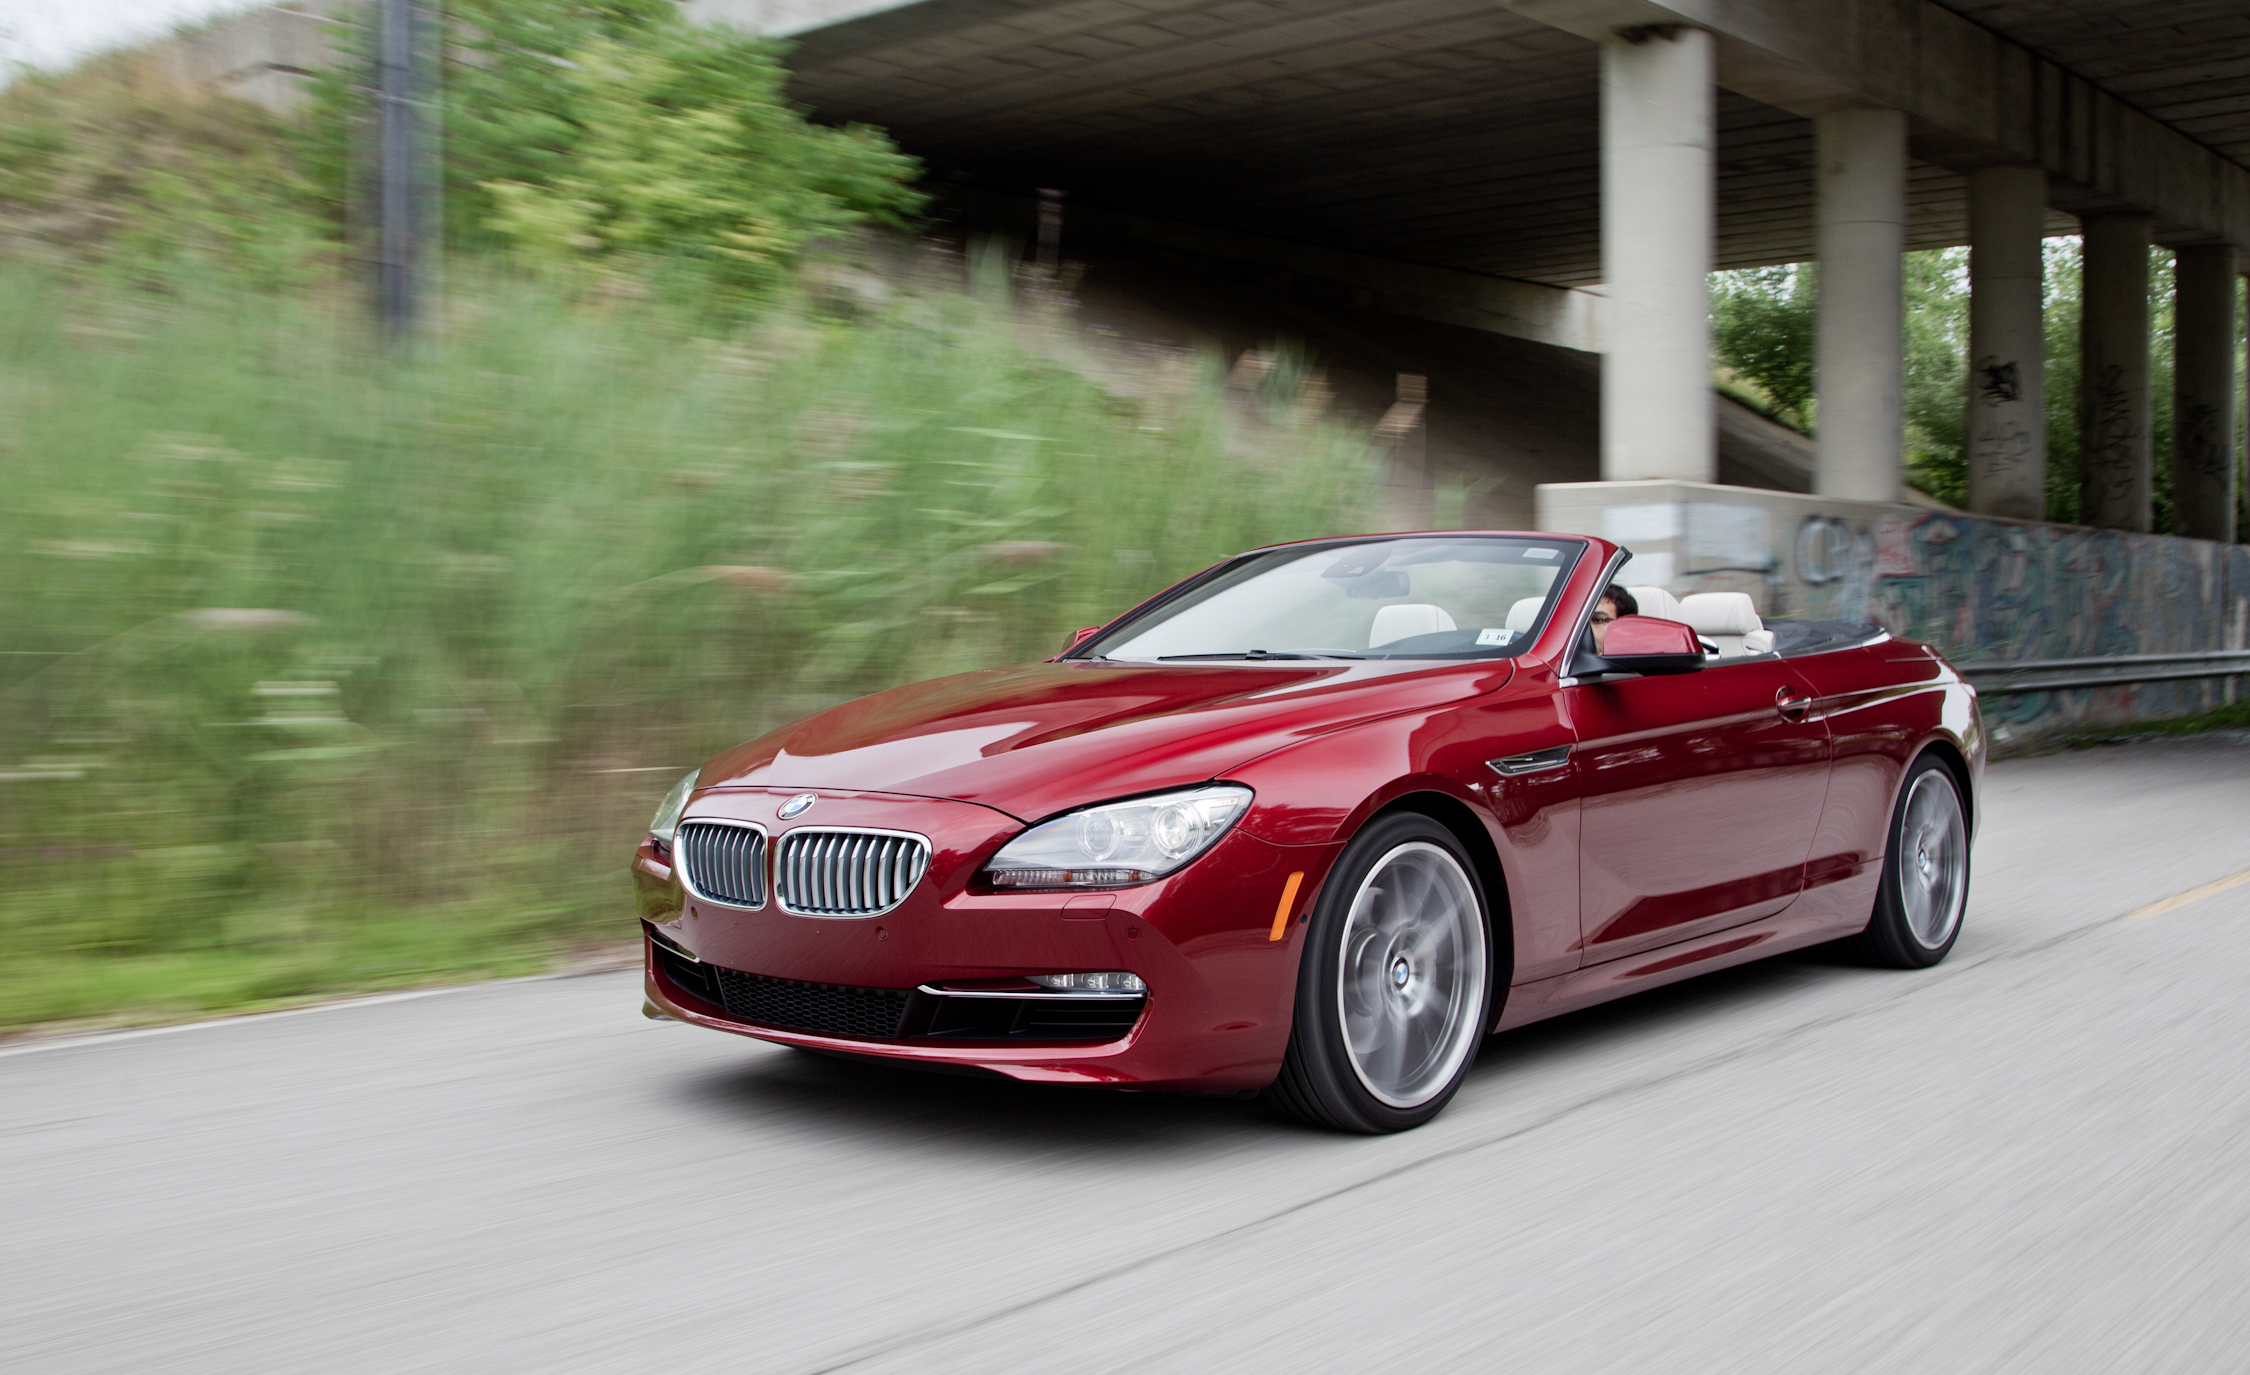 2012 BMW 650i Convertible (Photo 1 of 19)